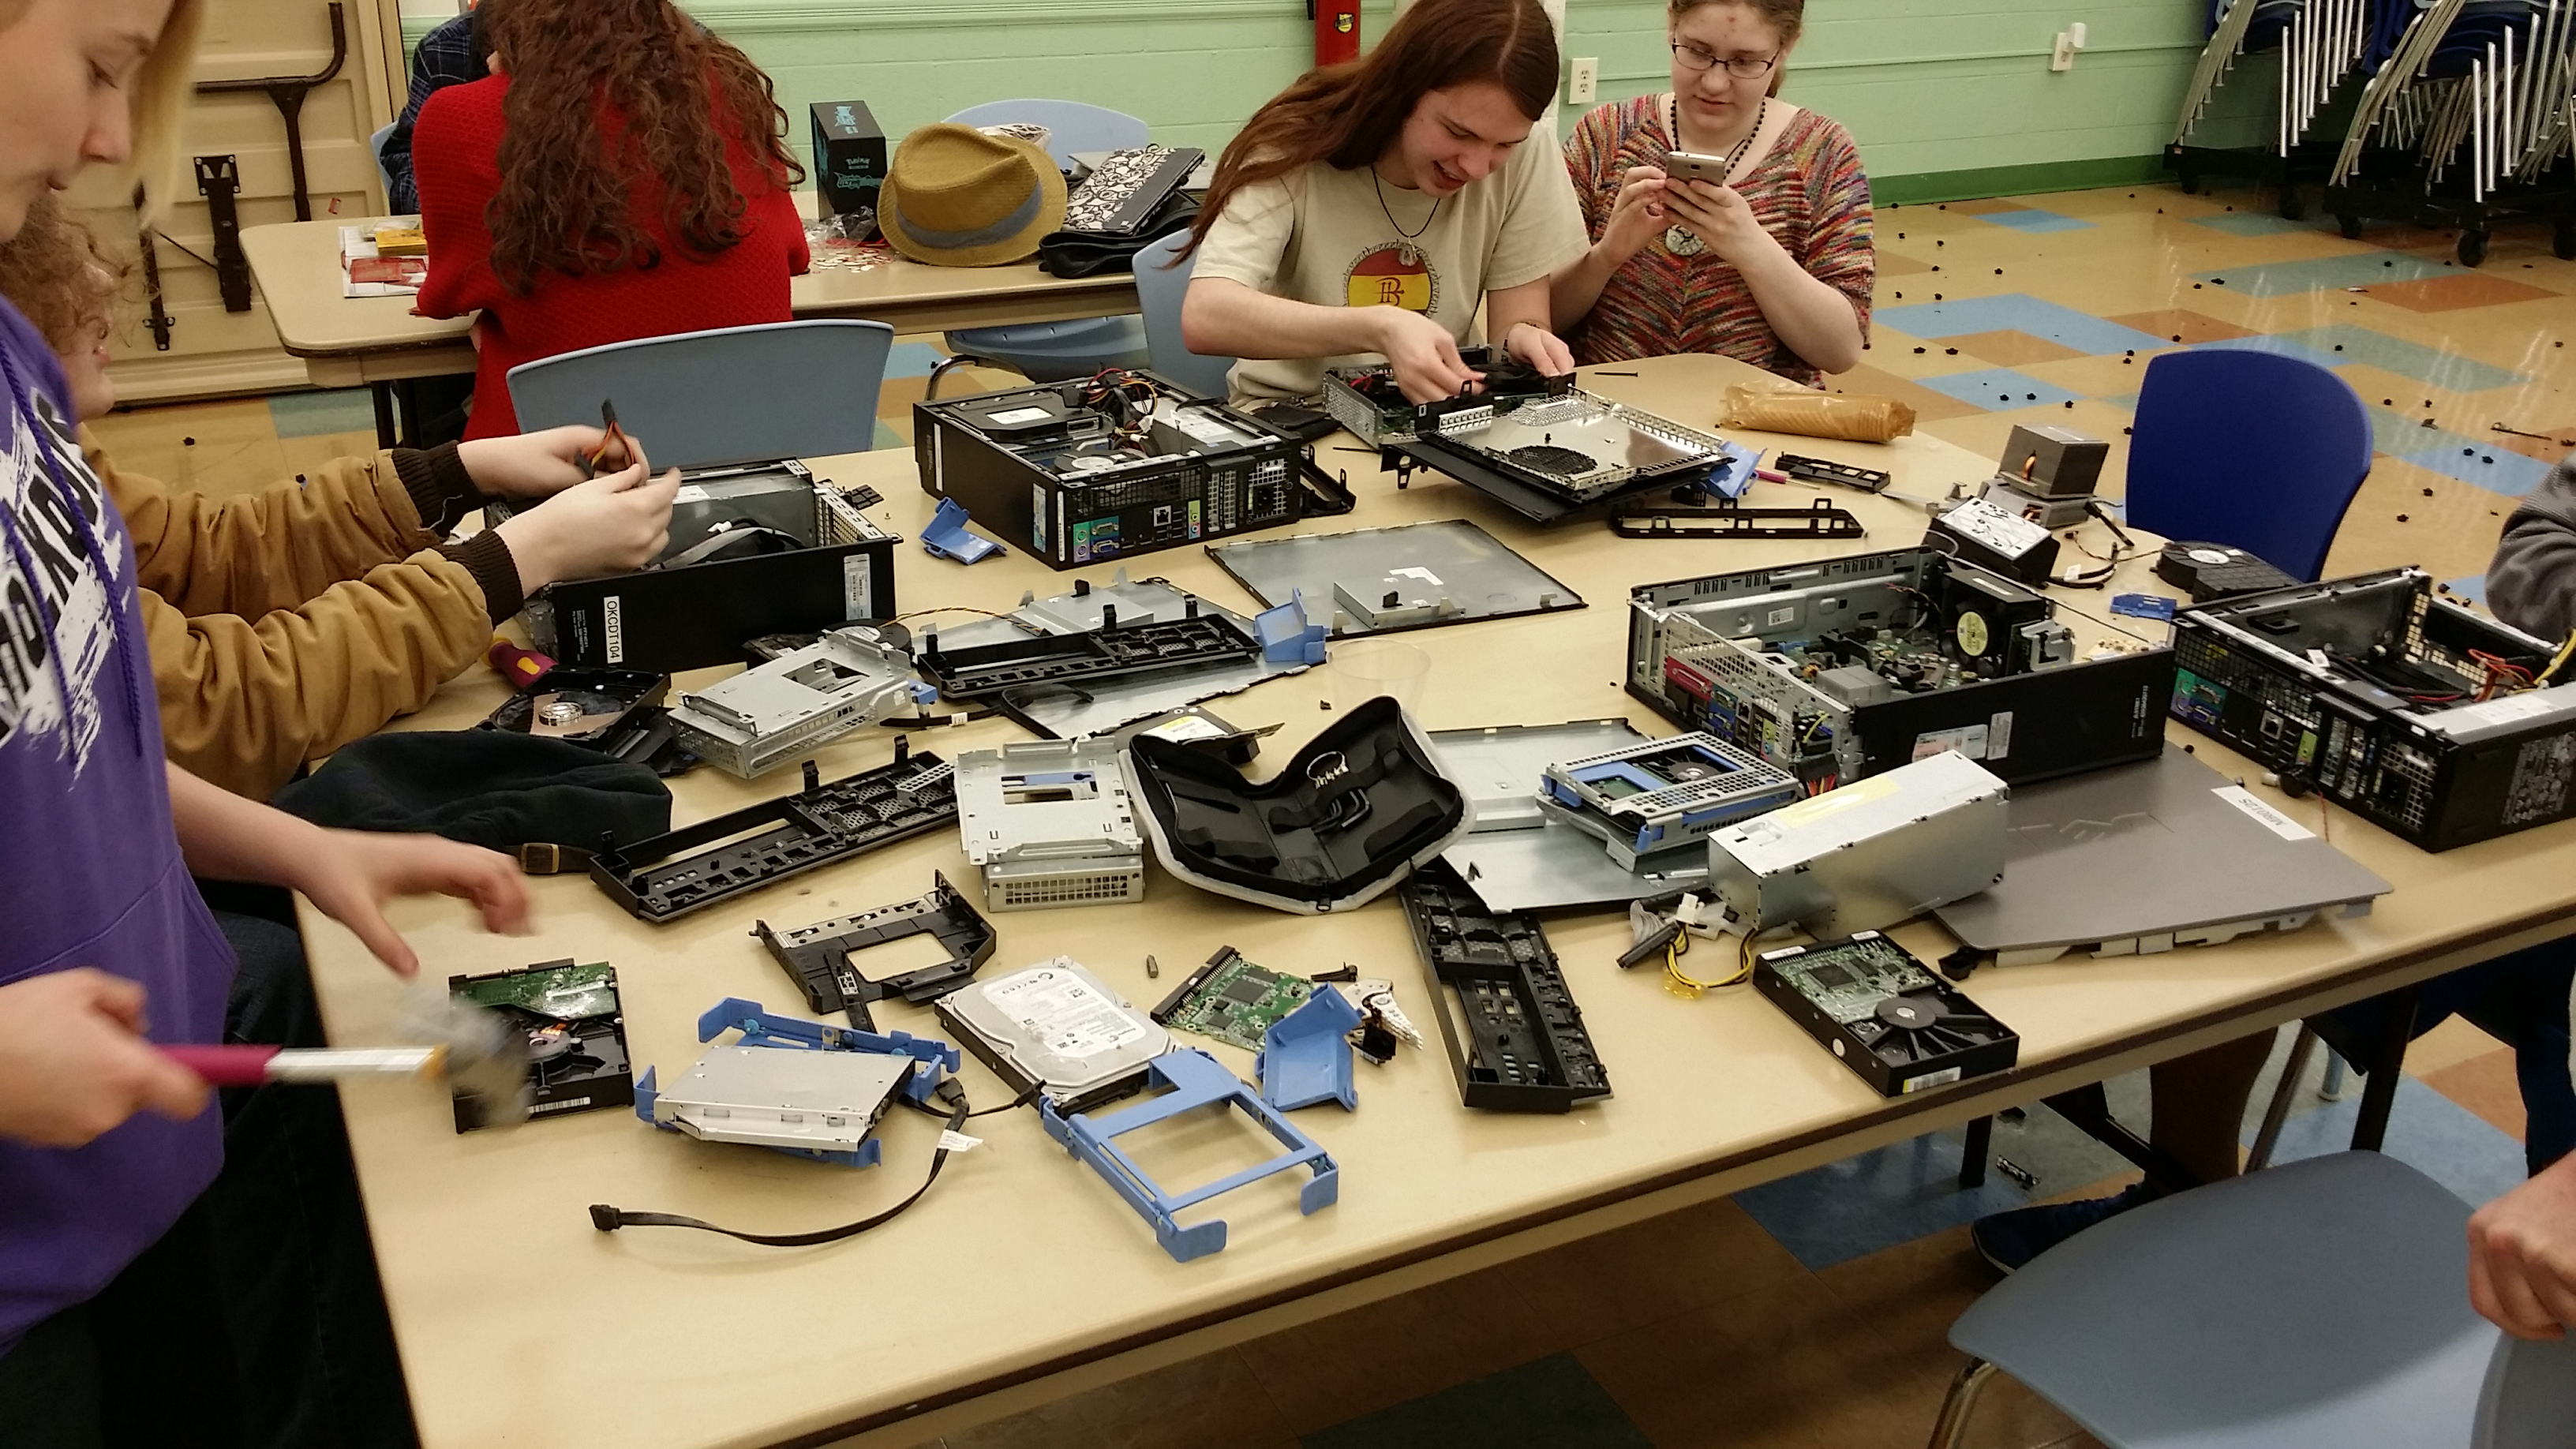 Teen Tech Take Apart